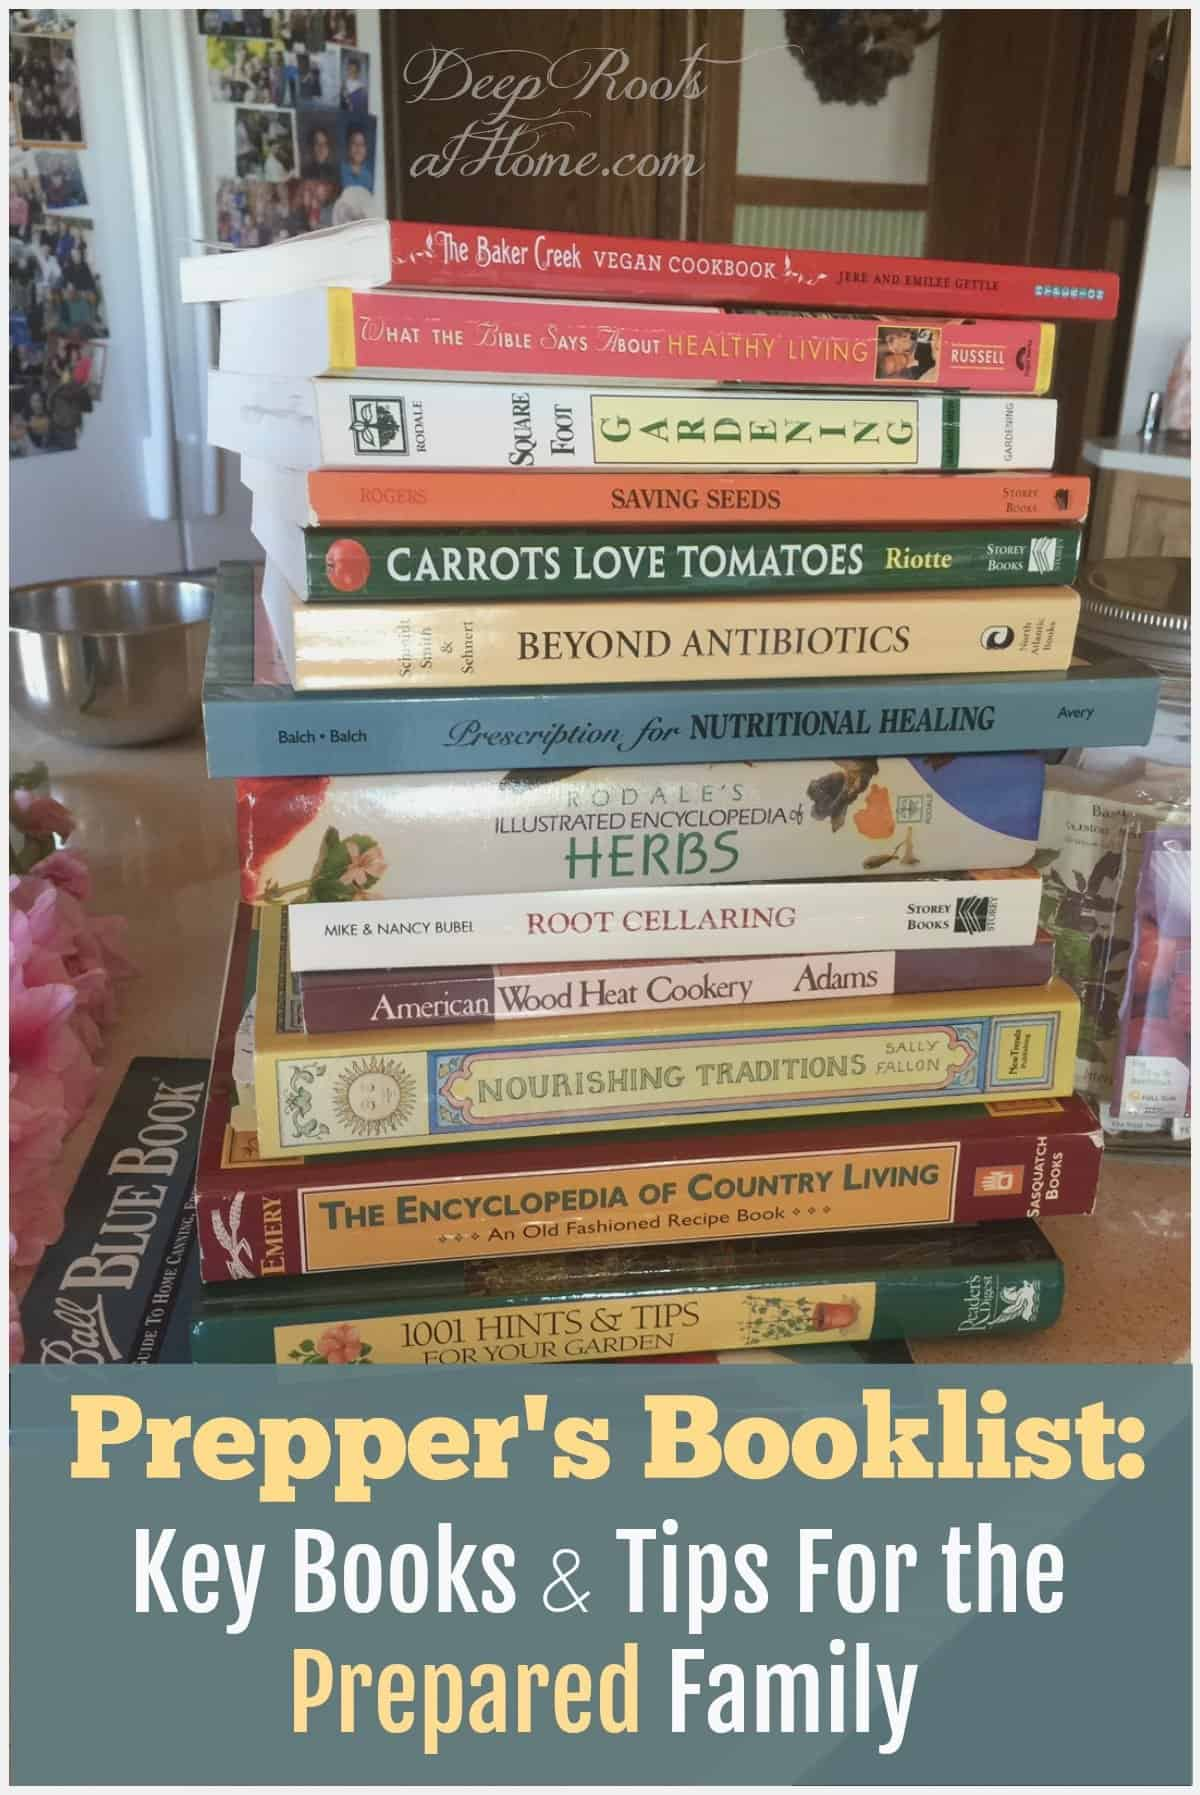 Prepper's Booklist: Key Books & Tips For the Prepared Family. be prepared